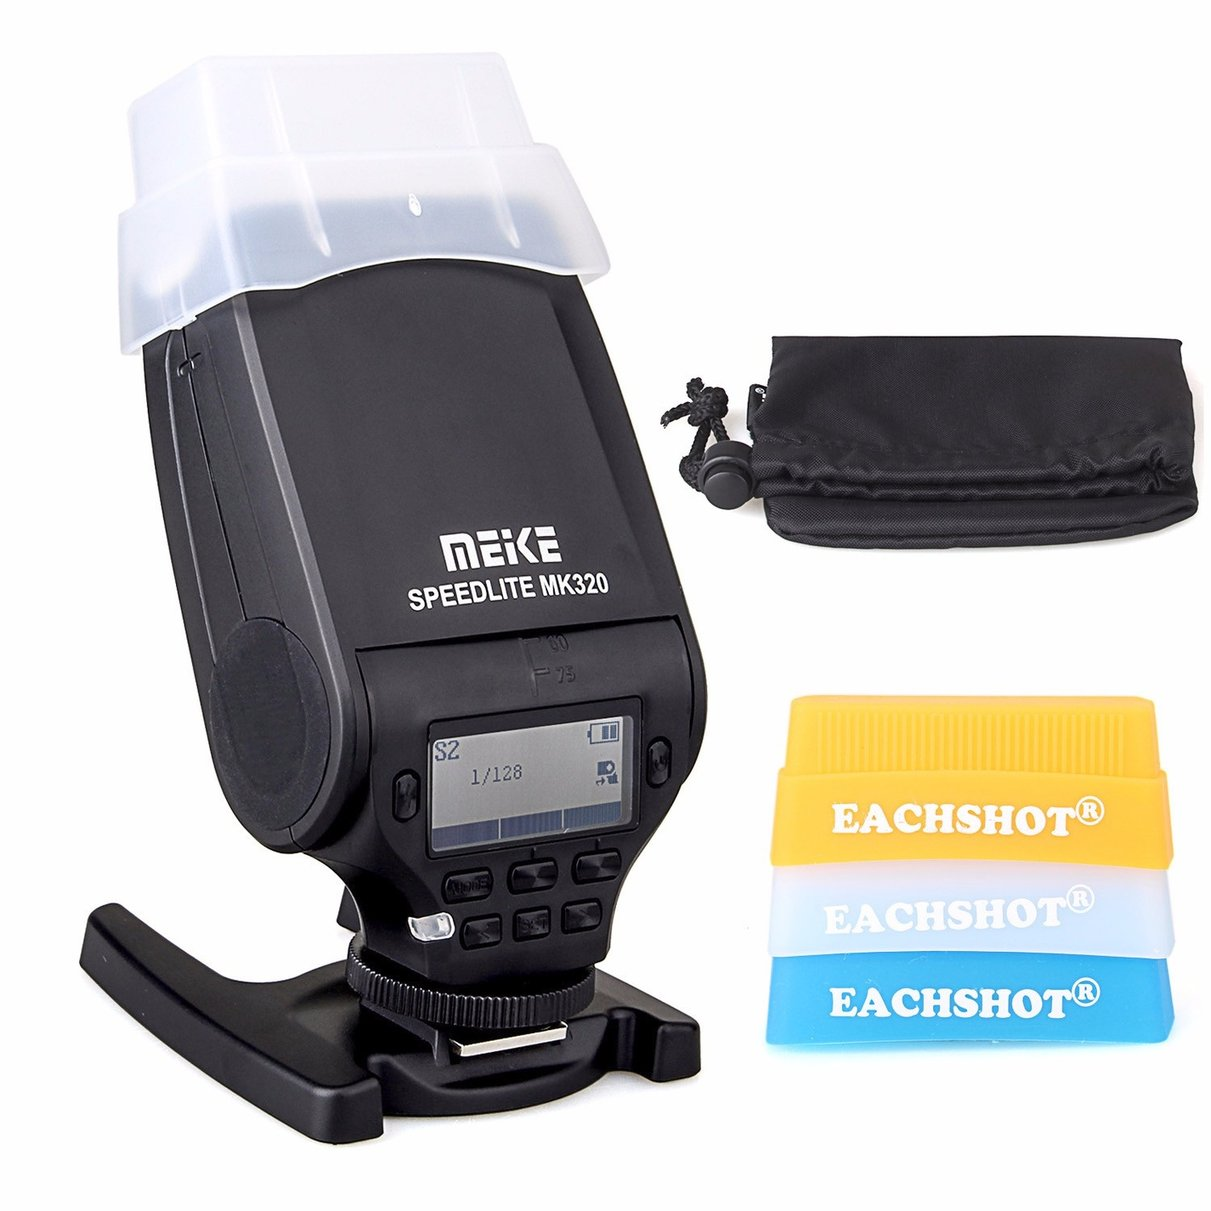 MEIKE MK-320 for Panasonic TTL Flash Speedlite for Panasonic Lumix DMC GF7 GM5 GH4 GM1 GX7 G6 GF6 GH3 G5 GF5 GX1 GF3 G3 kingmax km16gsdhc10 sdhc 16gb class 10